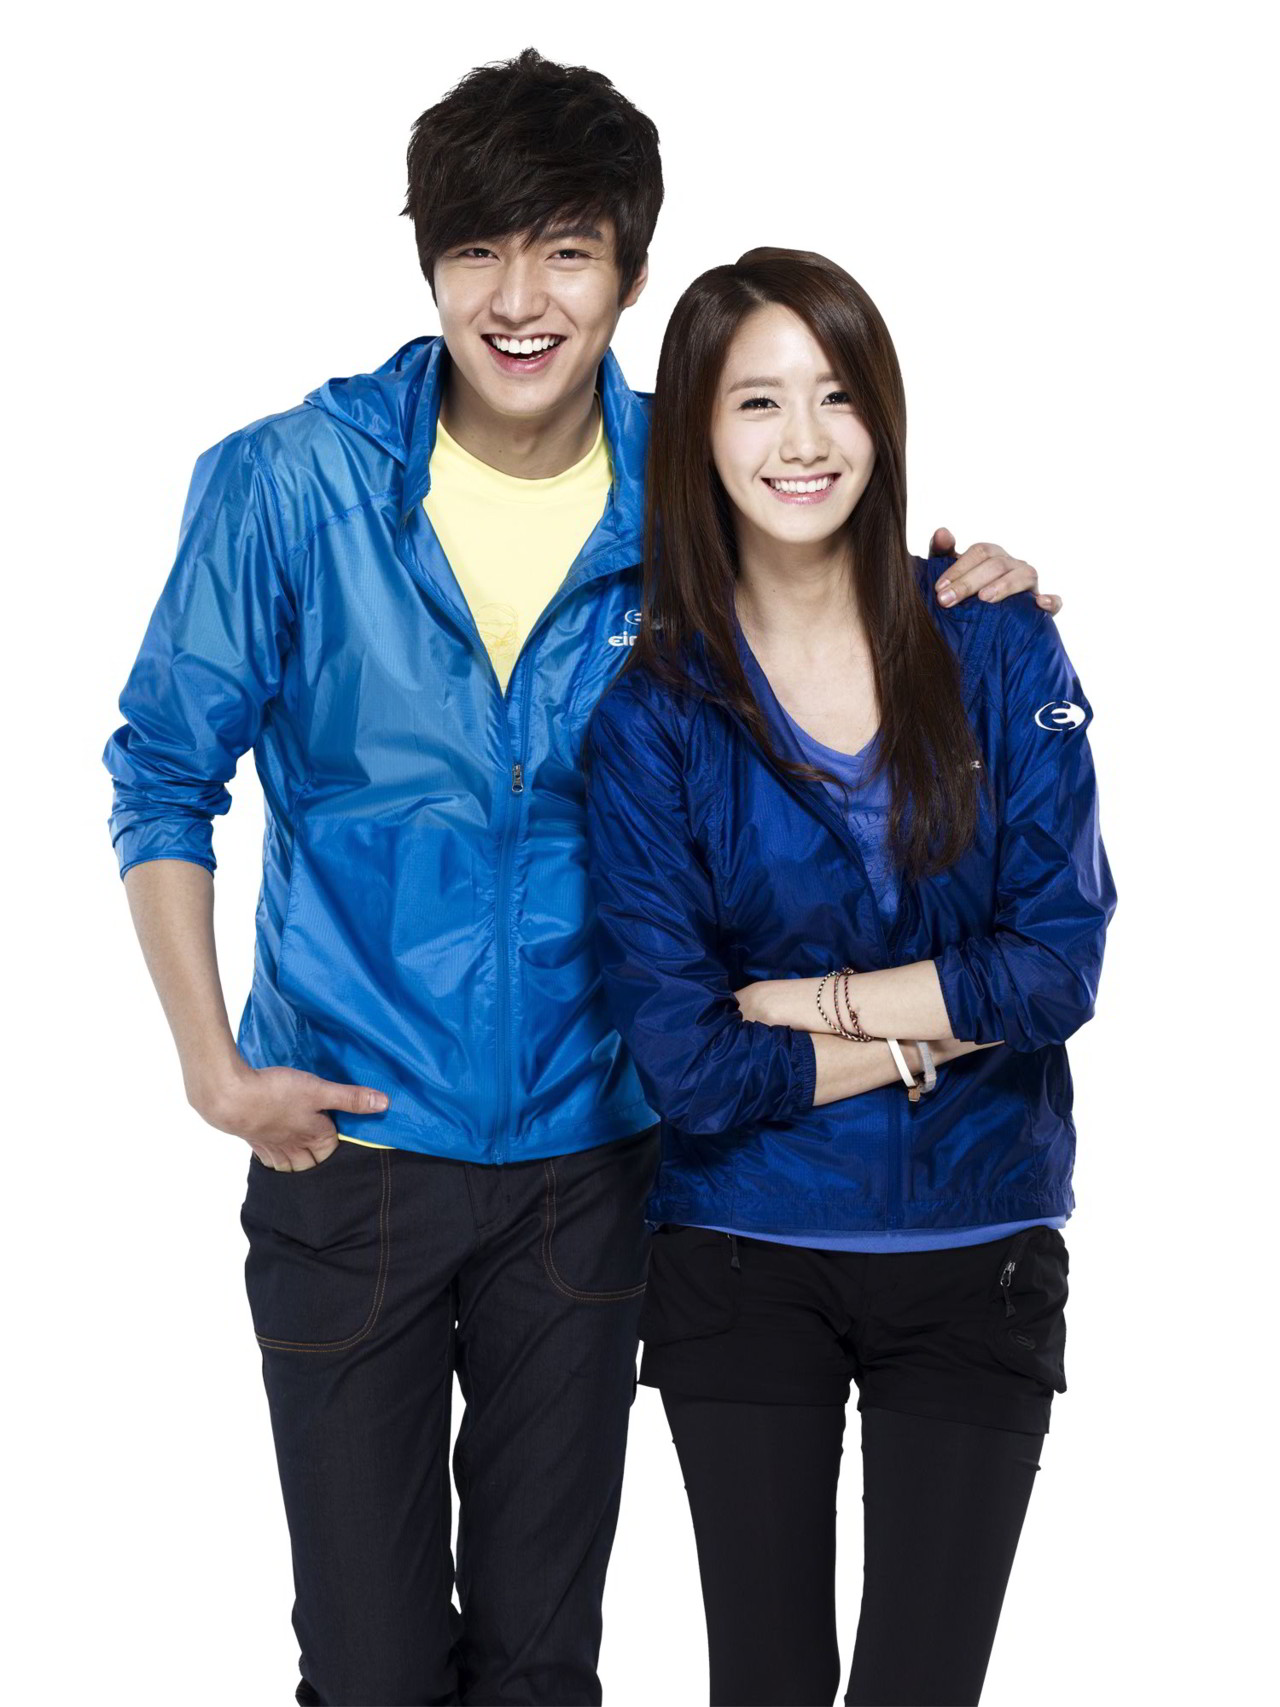 Yoona and lee min ho dating goo. characteristics of a healthy and enjoyable friendship or dating relationship.